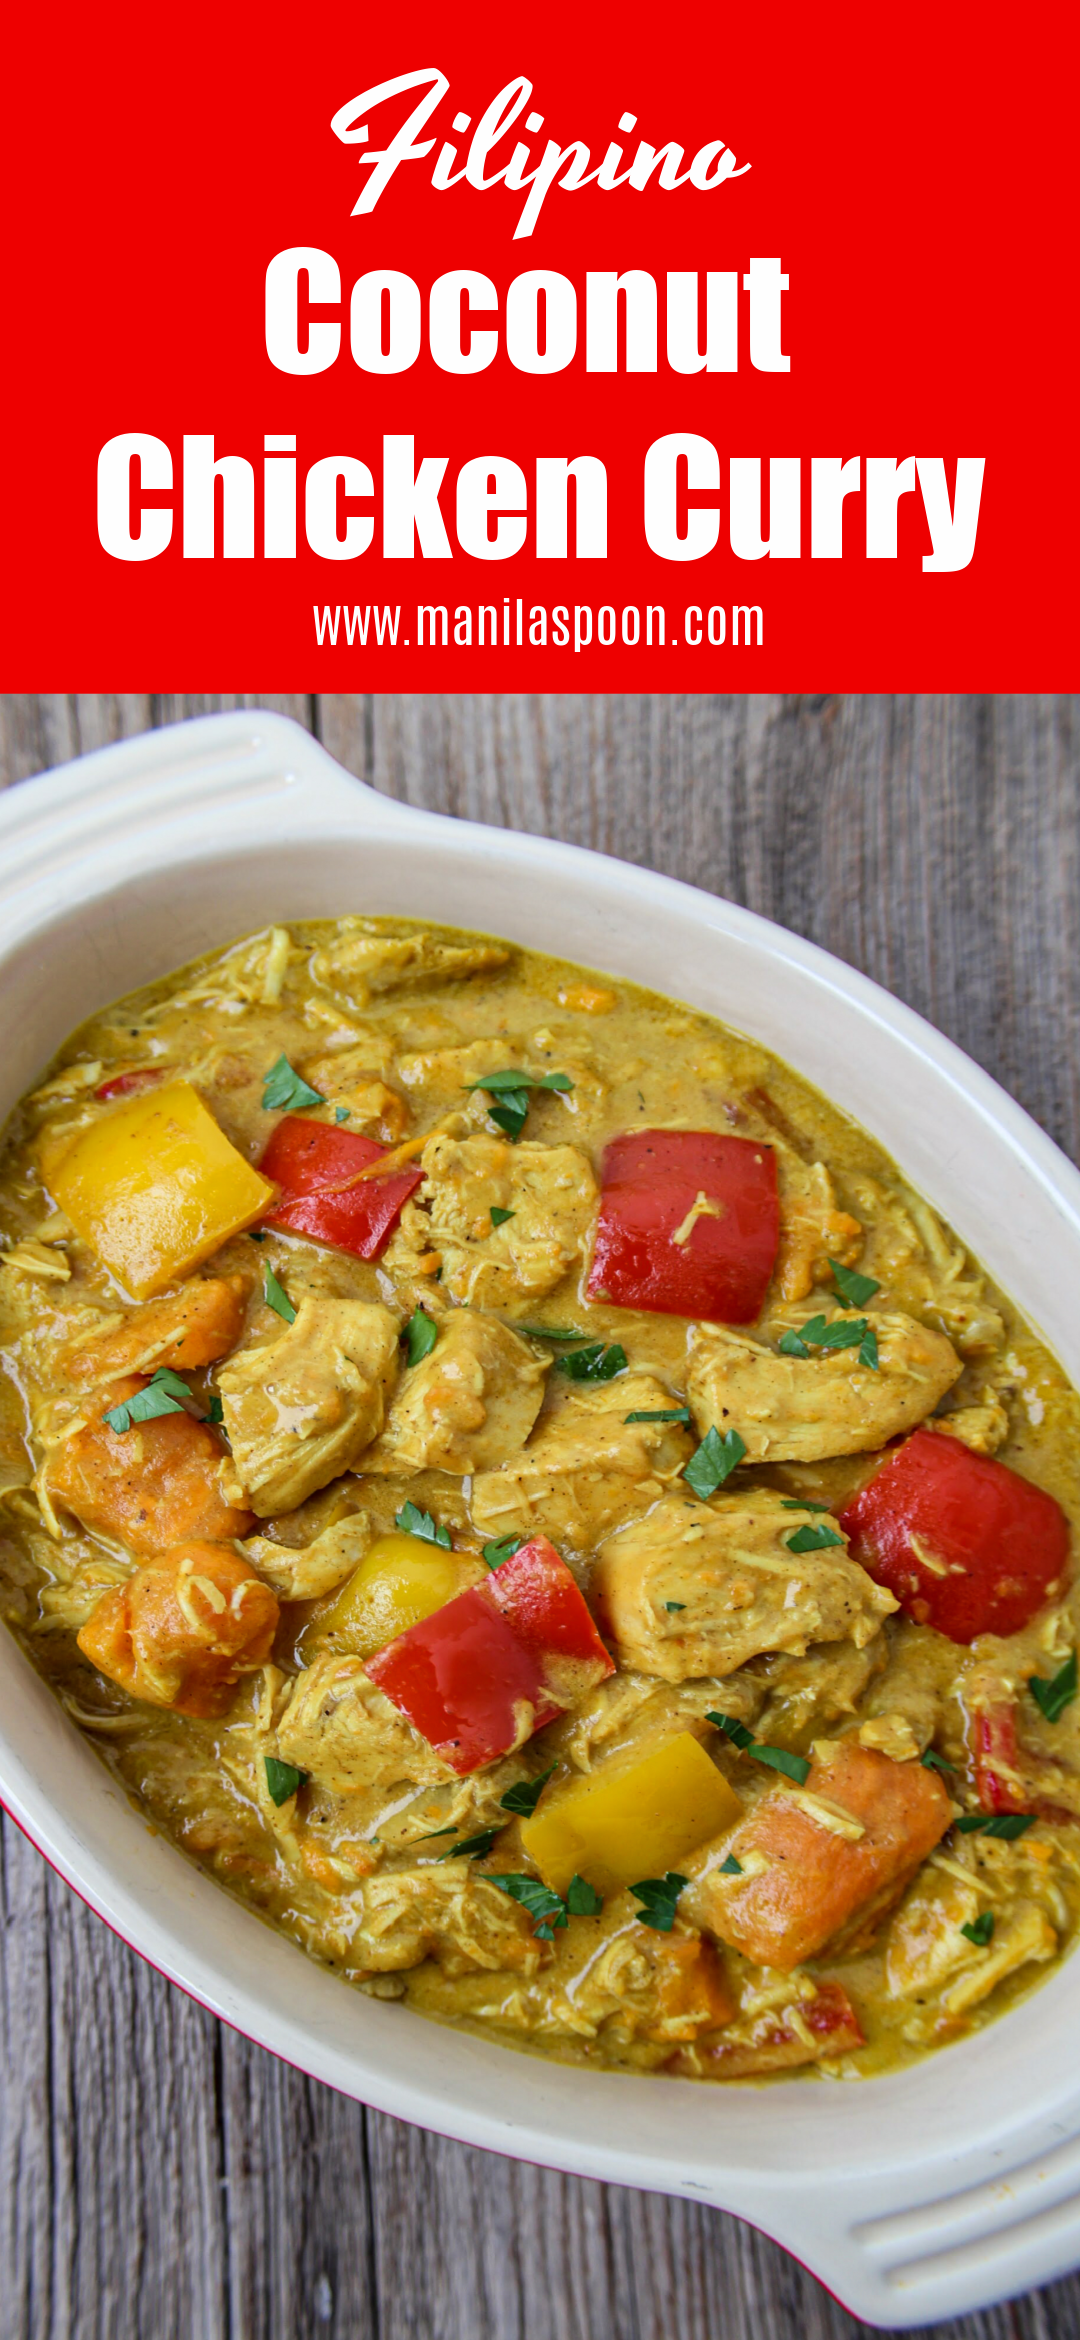 Filipino Coconut Chicken Curry